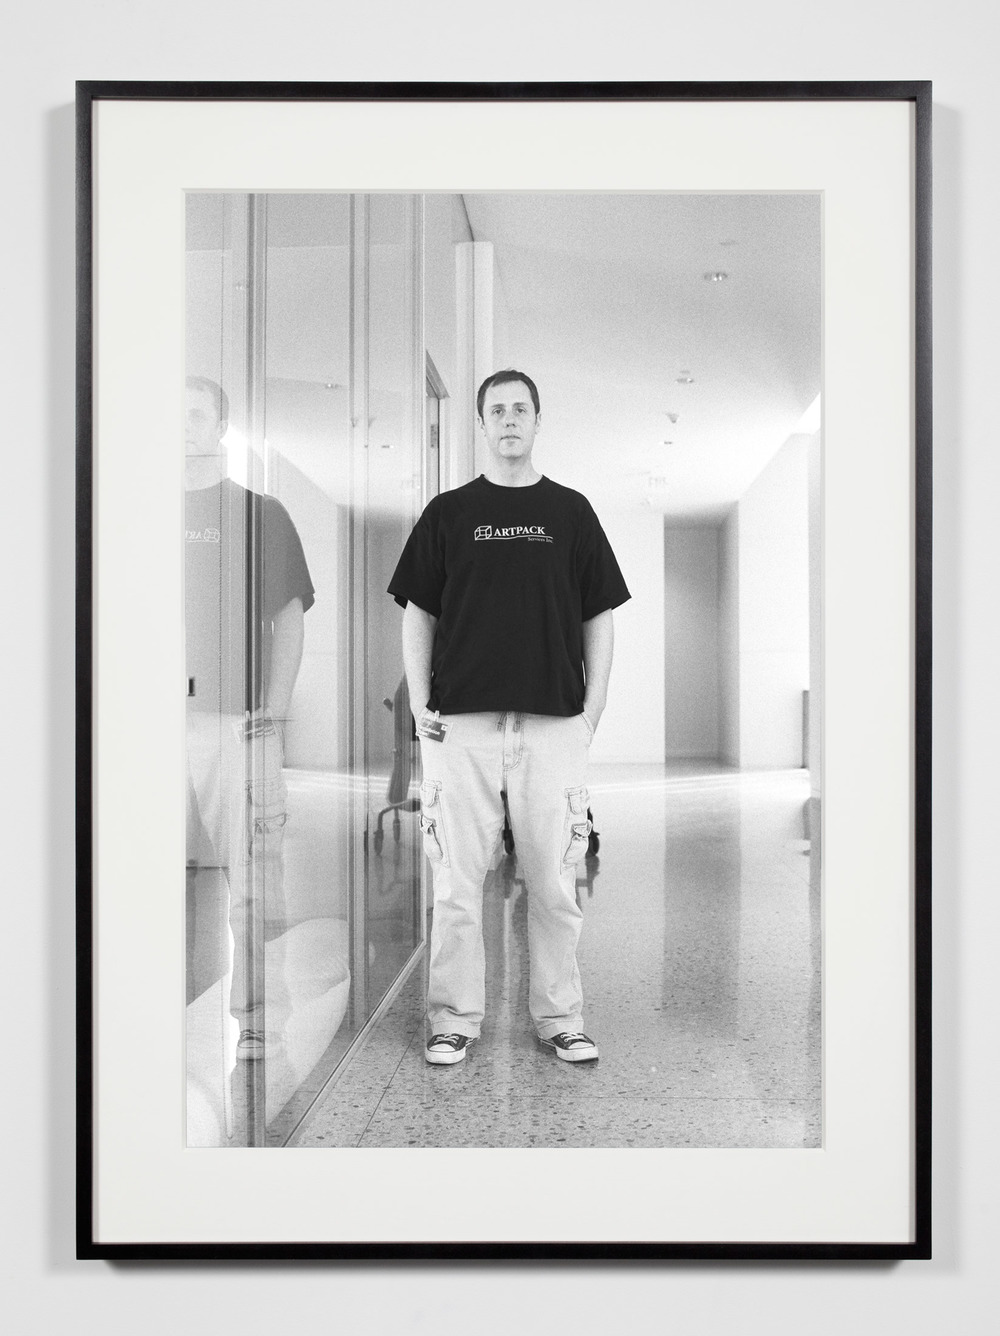 University Museum Preparator, Ann Arbor, Michigan, March 27, 2009    2011   Epson Ultrachrome K3 archival ink jet print on Hahnemühle Photo Rag paper  36 3/8 x 26 3/8 inches   Industrial Portraits, 2008–